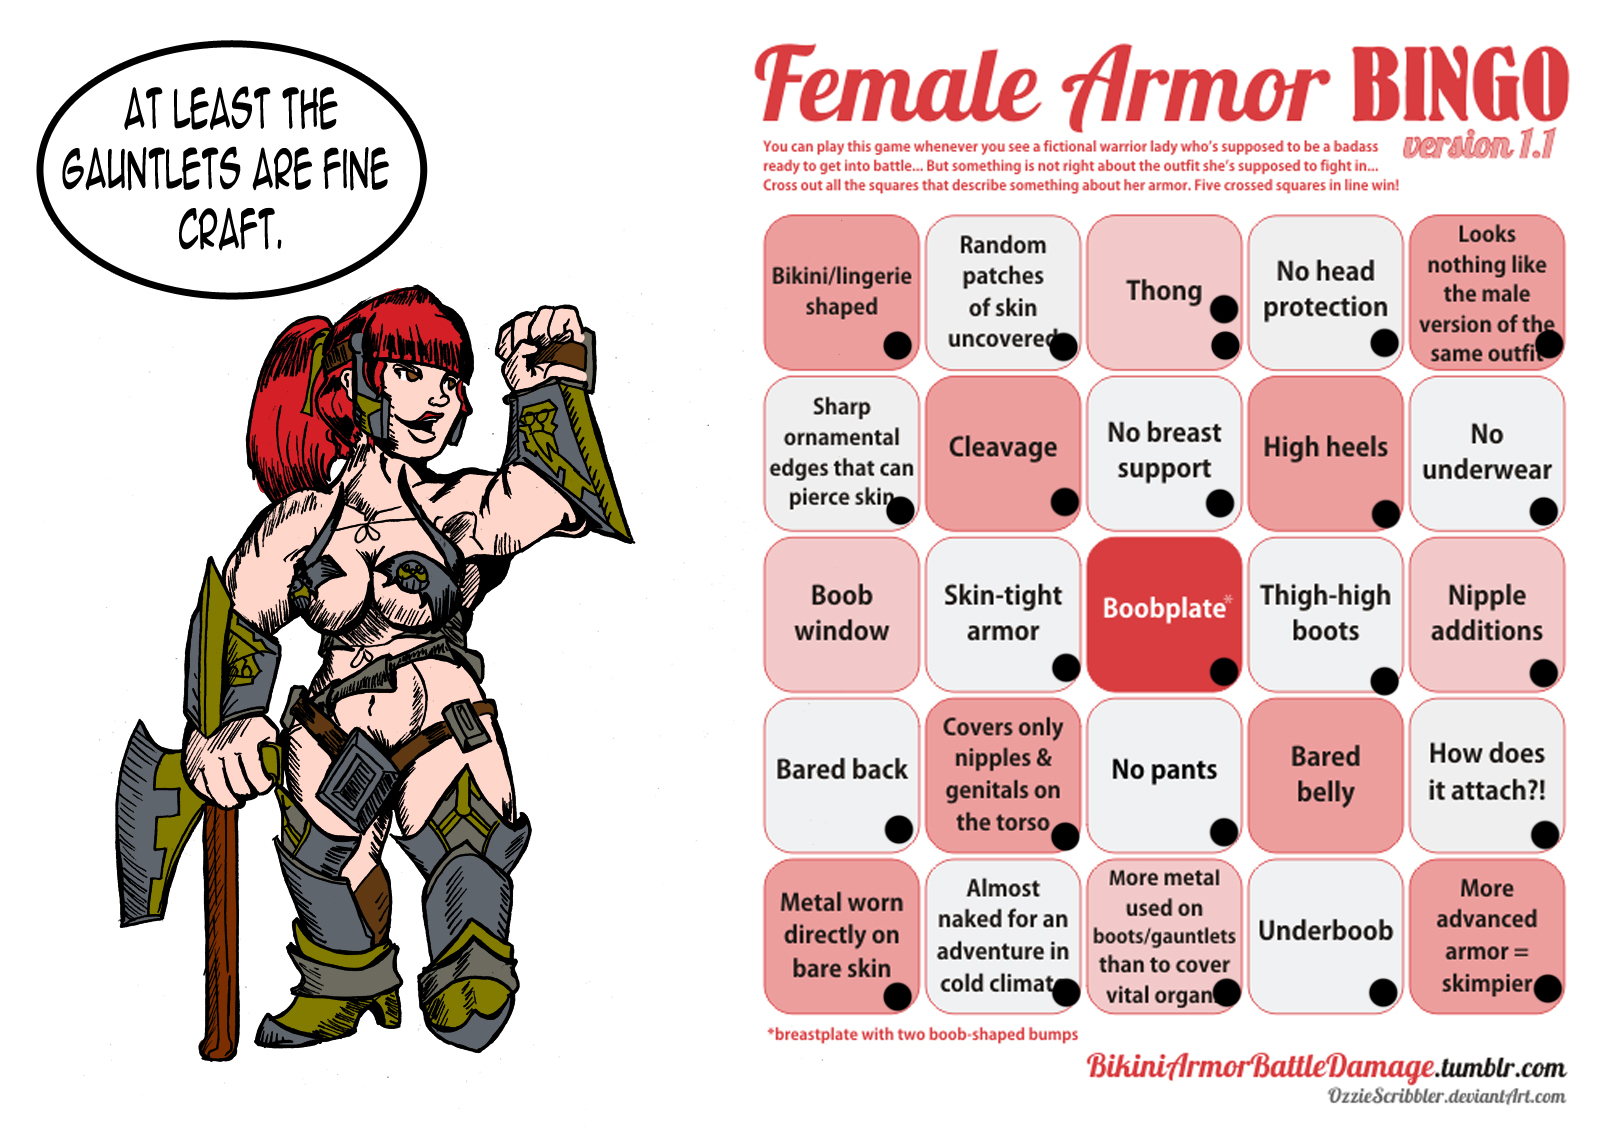 Confirm. was Fantasy female armor meme